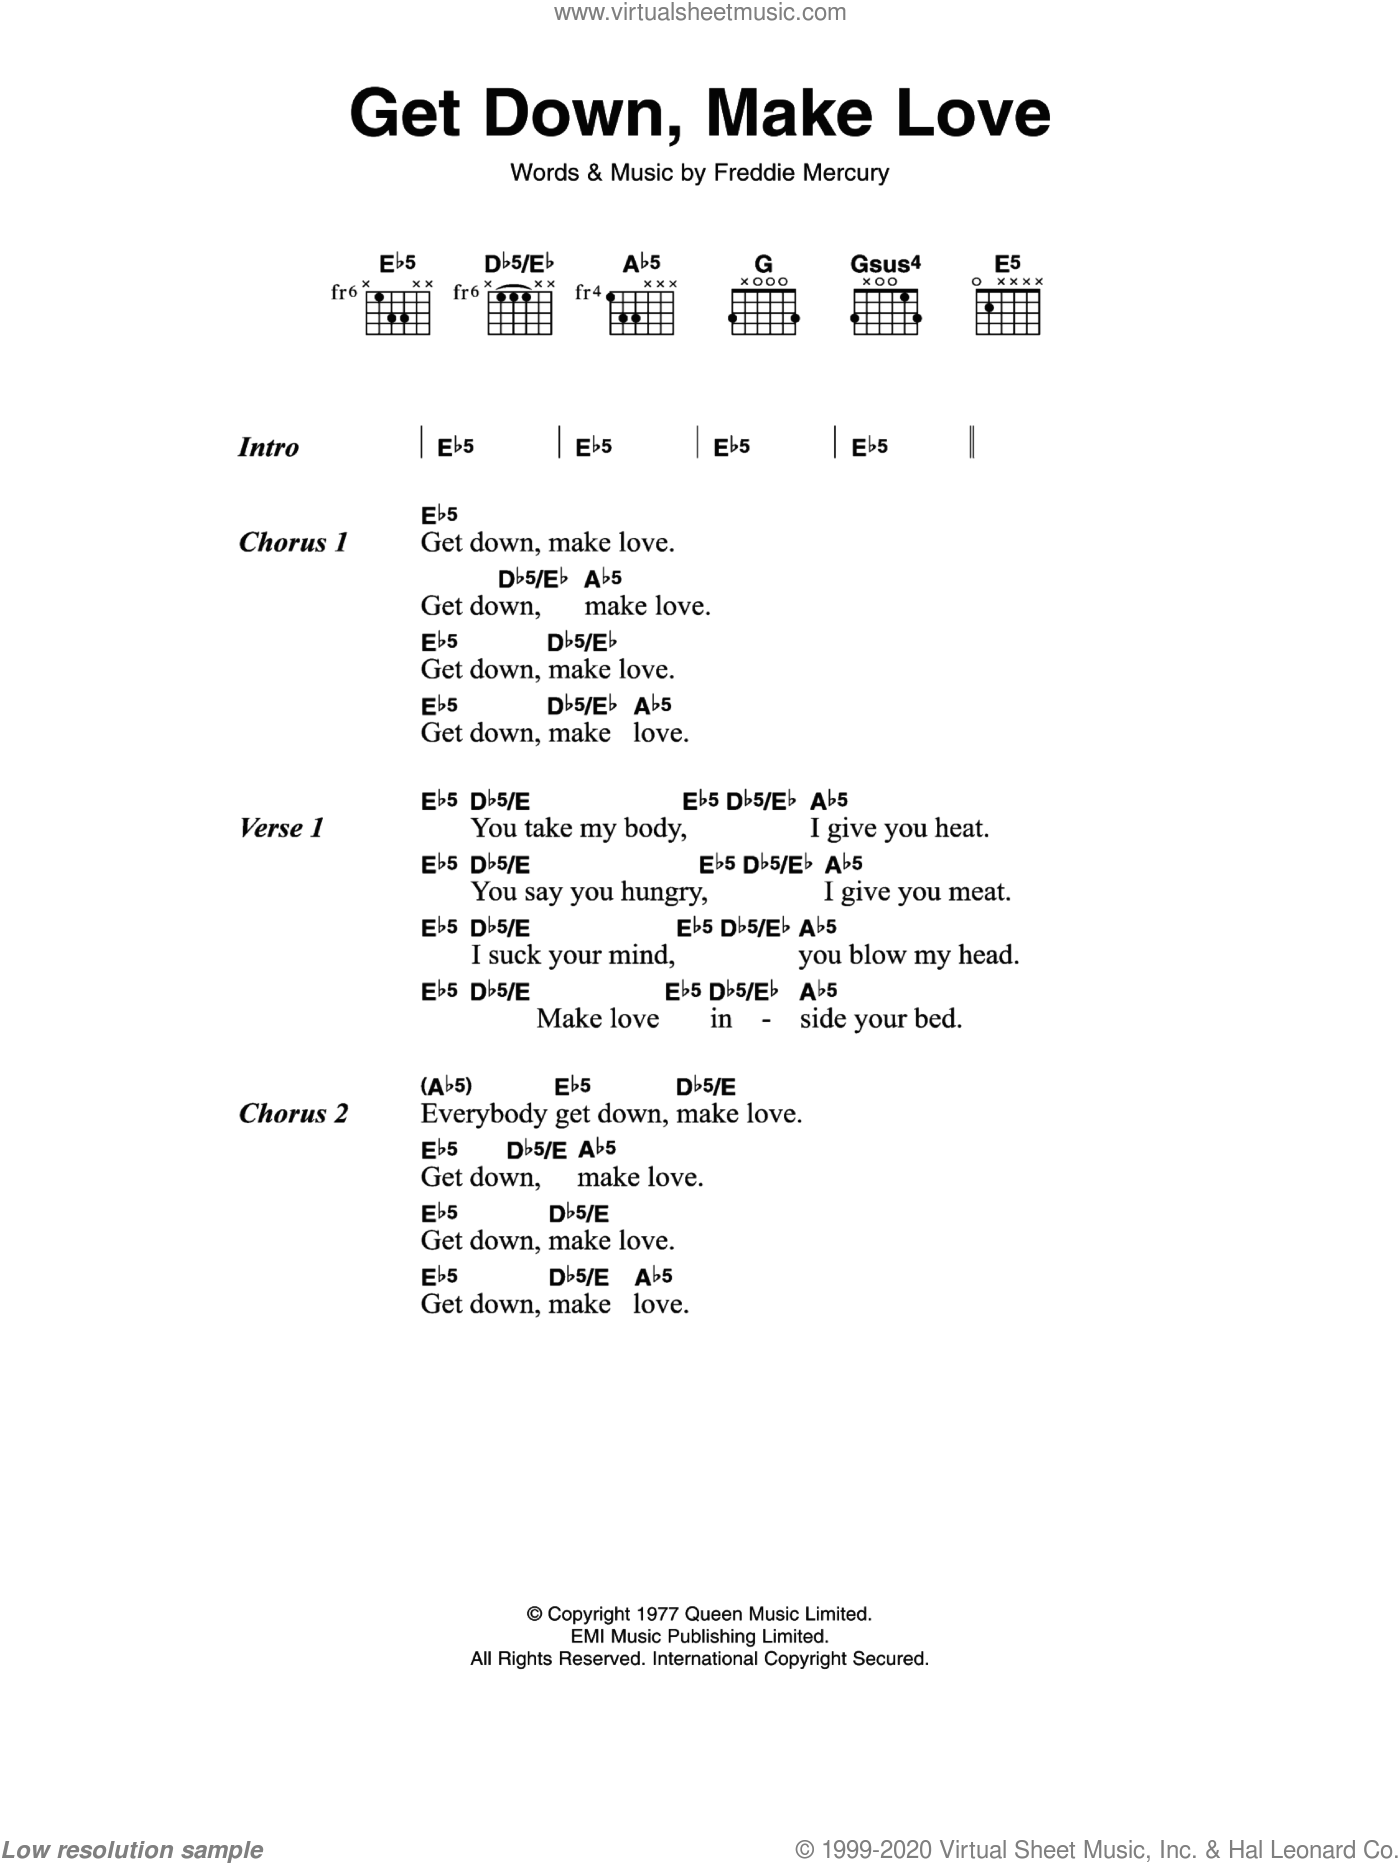 Get Down, Make Love sheet music for guitar (chords) by Frederick Mercury